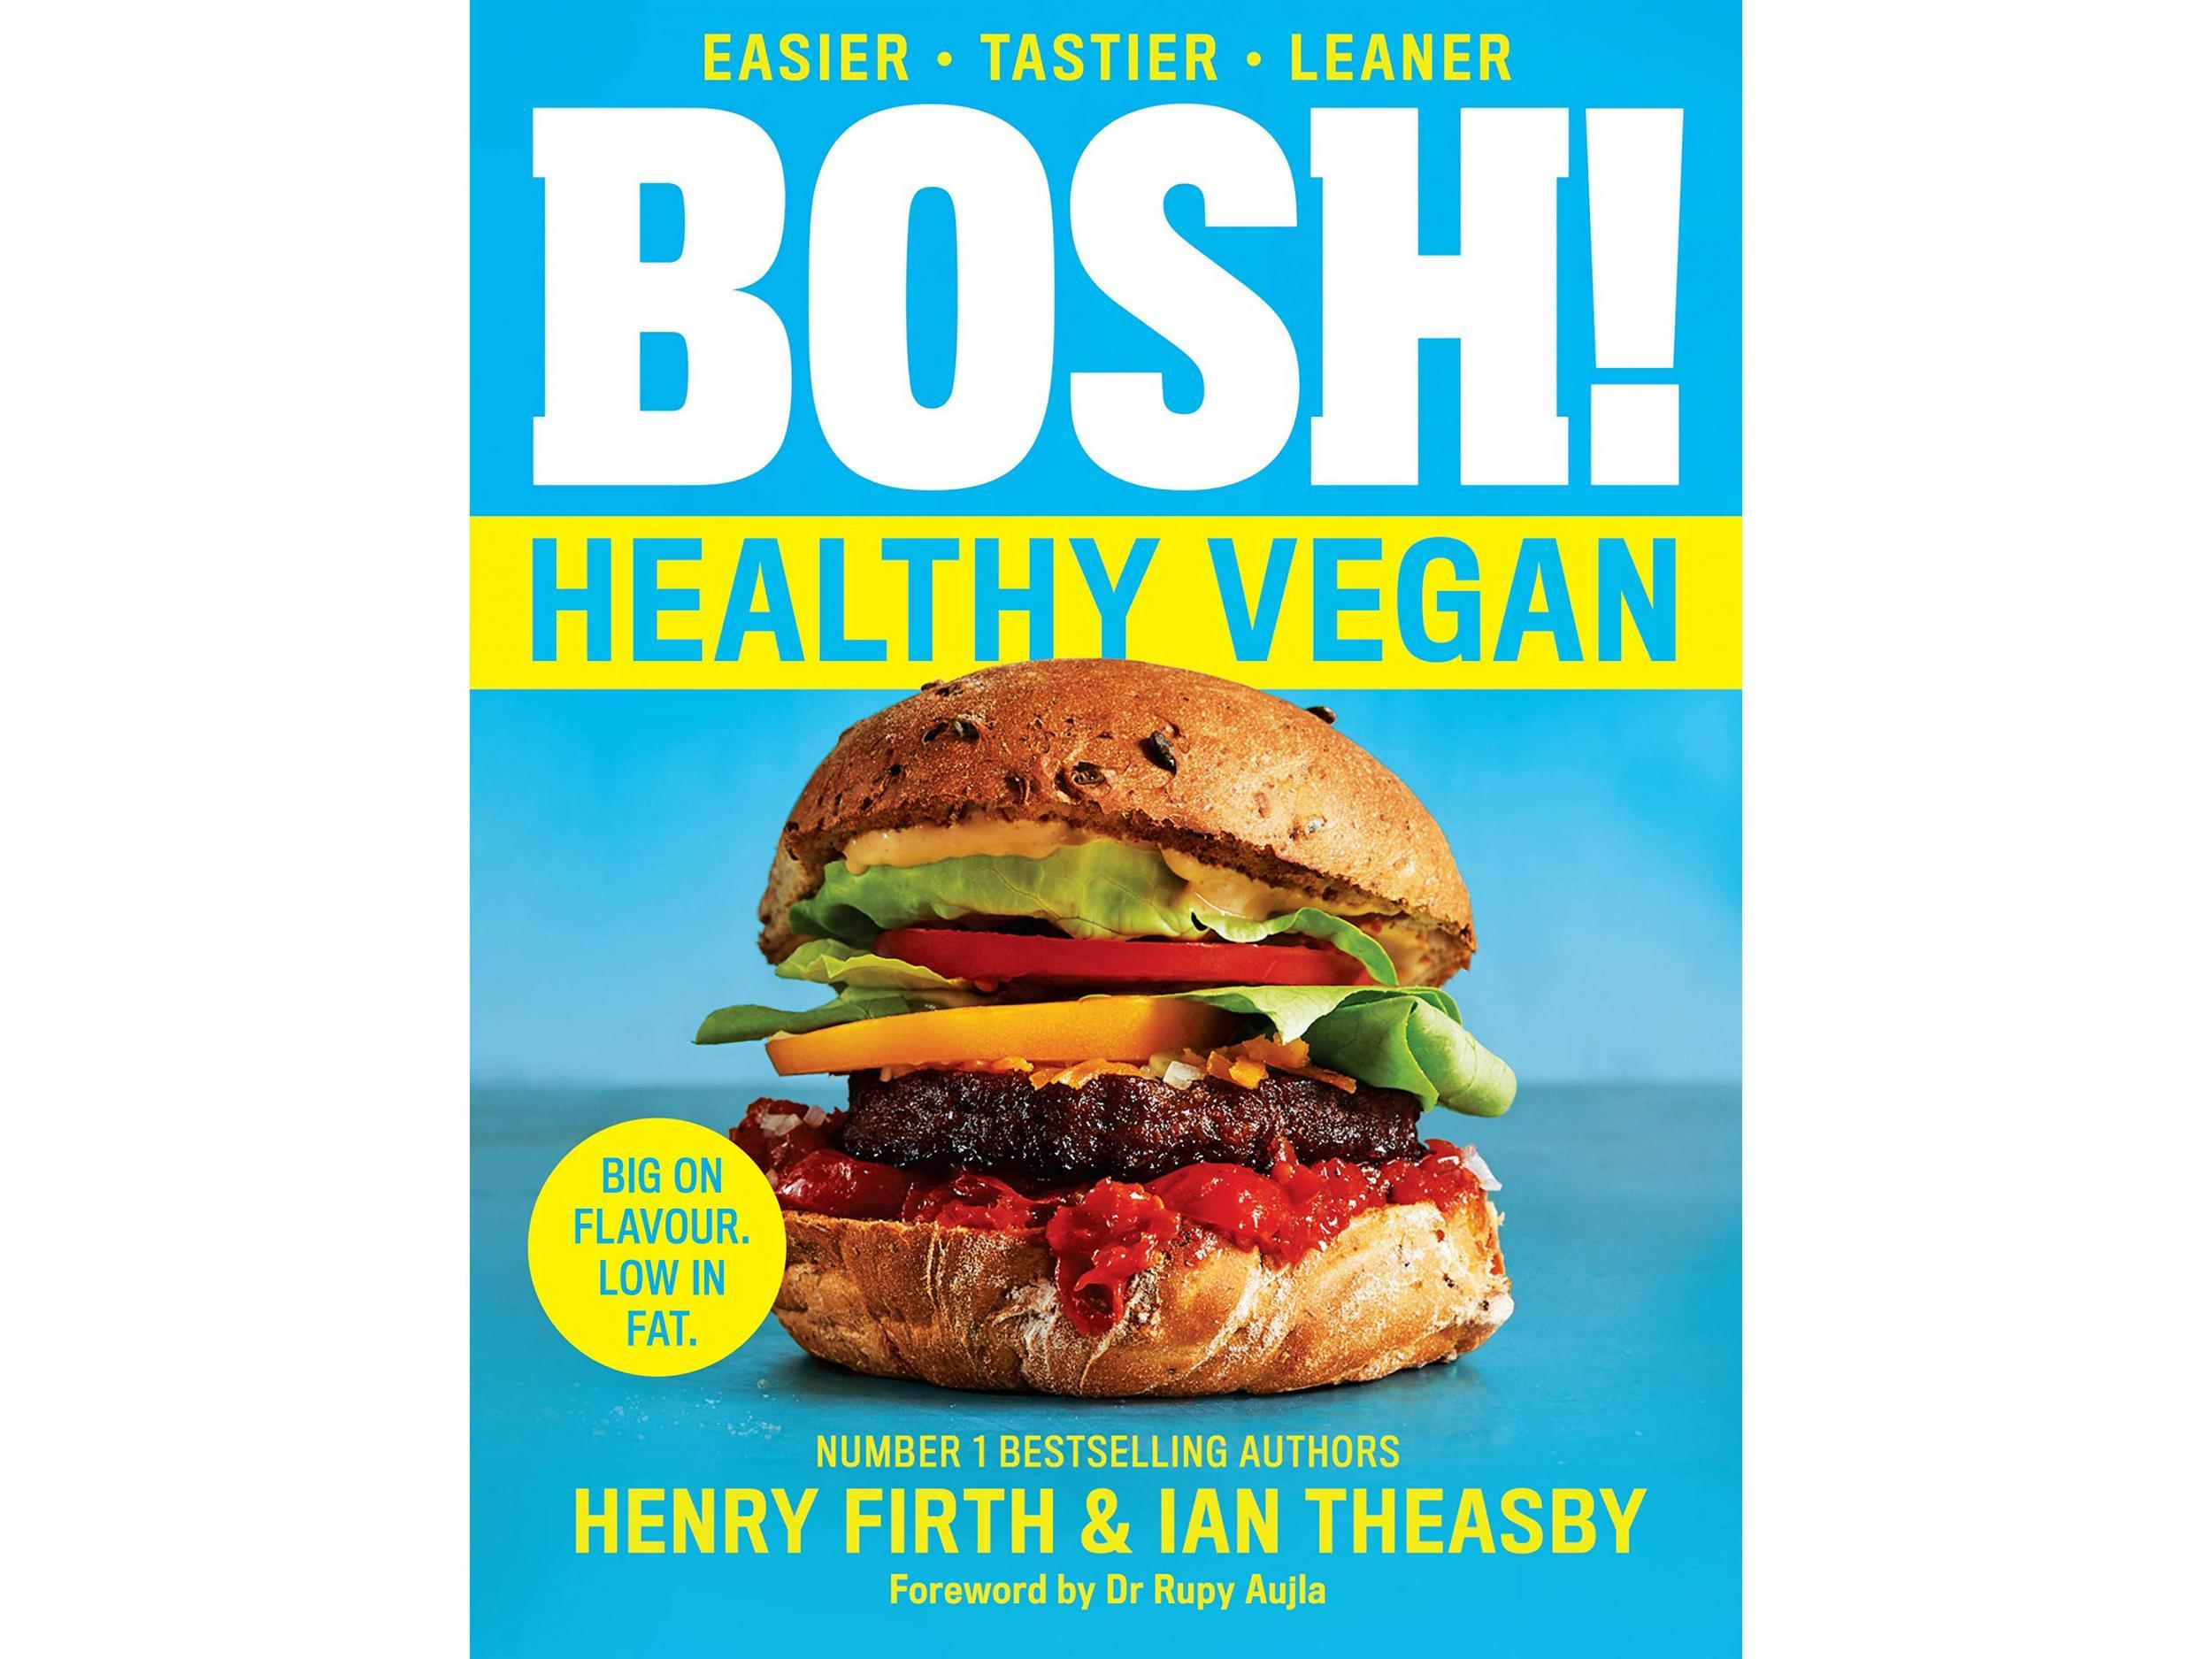 'BOSH! Healthy Vegan' by Henry Firth & Ian Theasby. Published by HQ: £10.87, Amazon